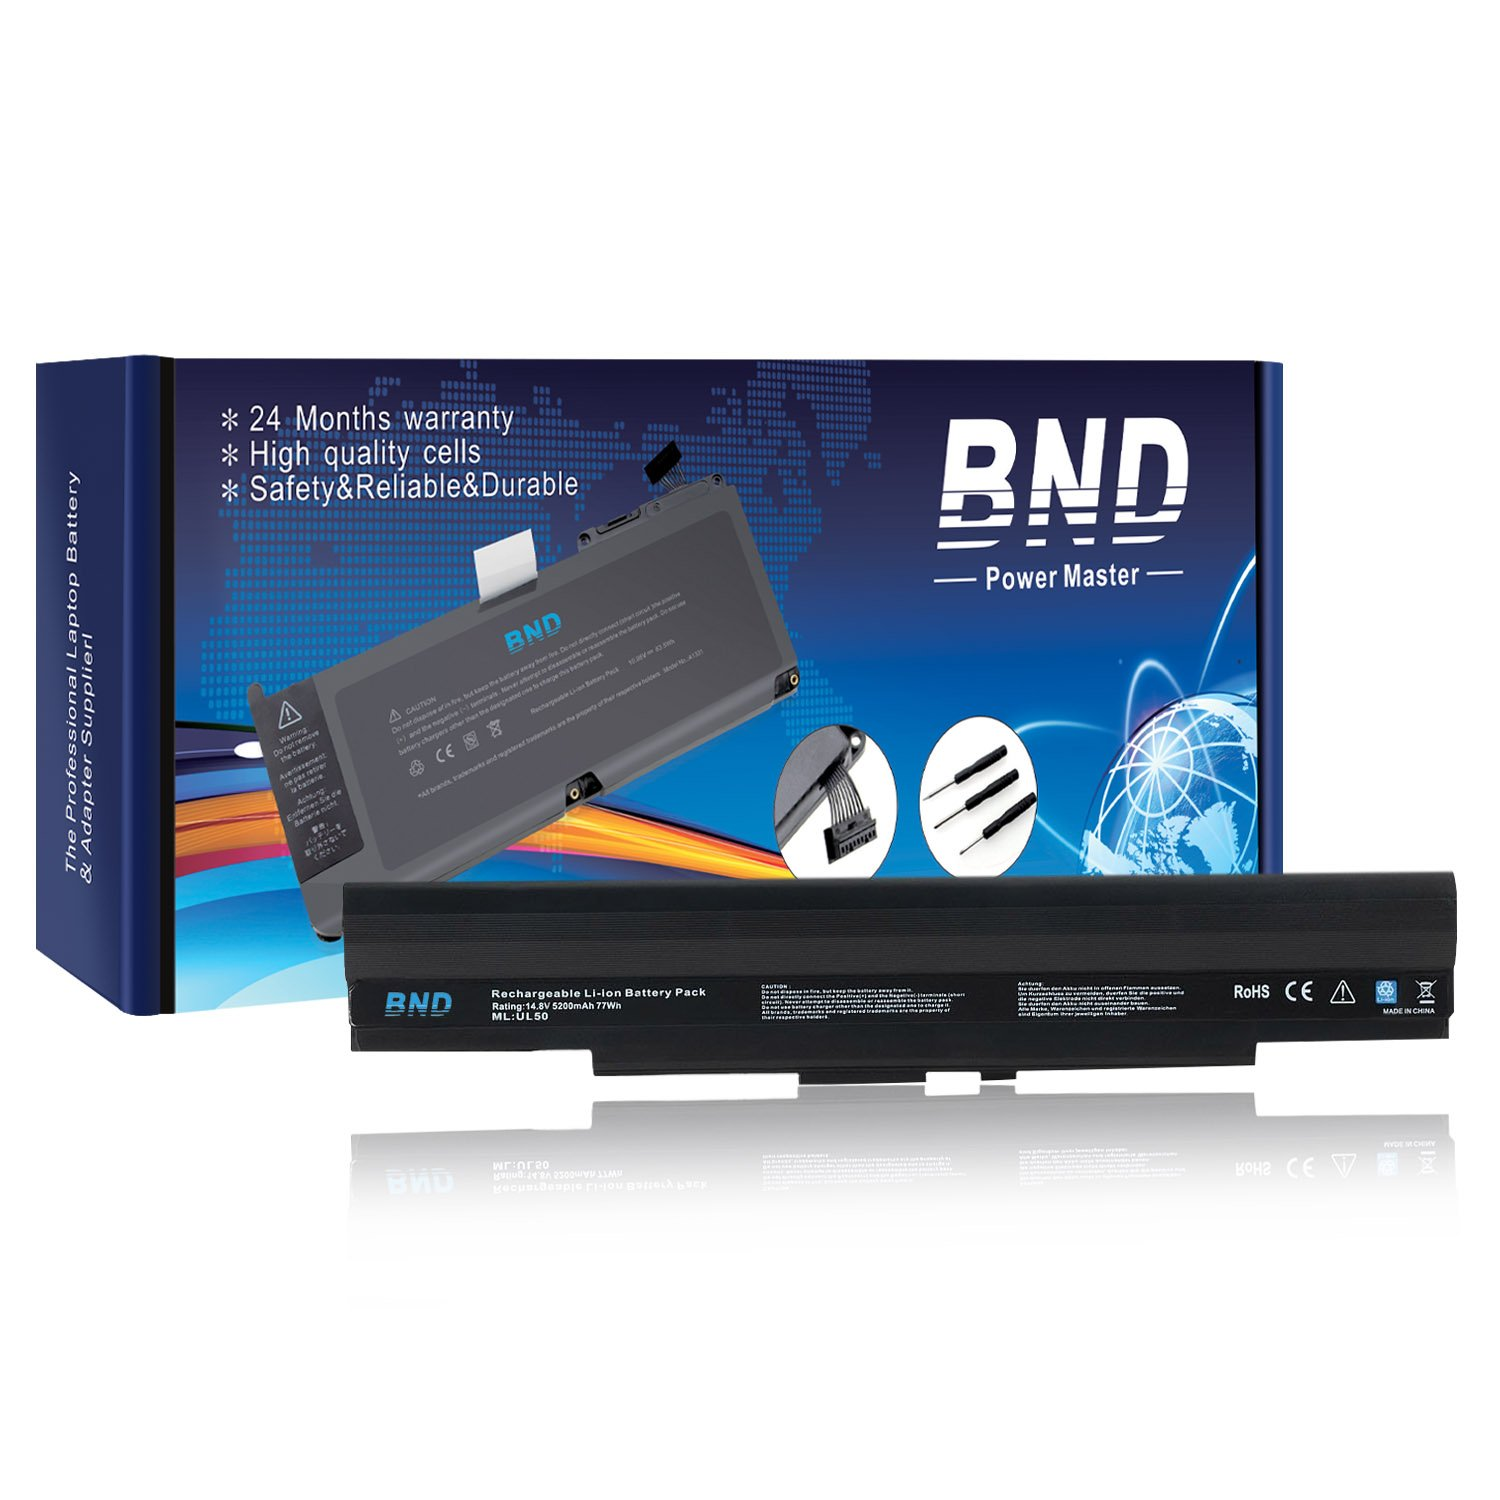 BND 5200mAh Battery [with Samsung Cells] for Asus UL80JT UL30A UL30V U30JC UL50 UL50V UL80 UL80V UL80VL UL80J, fits P/N A42-UL50 A42-UL30 - 24 Months Warranty [8-Cell, Li-ion]